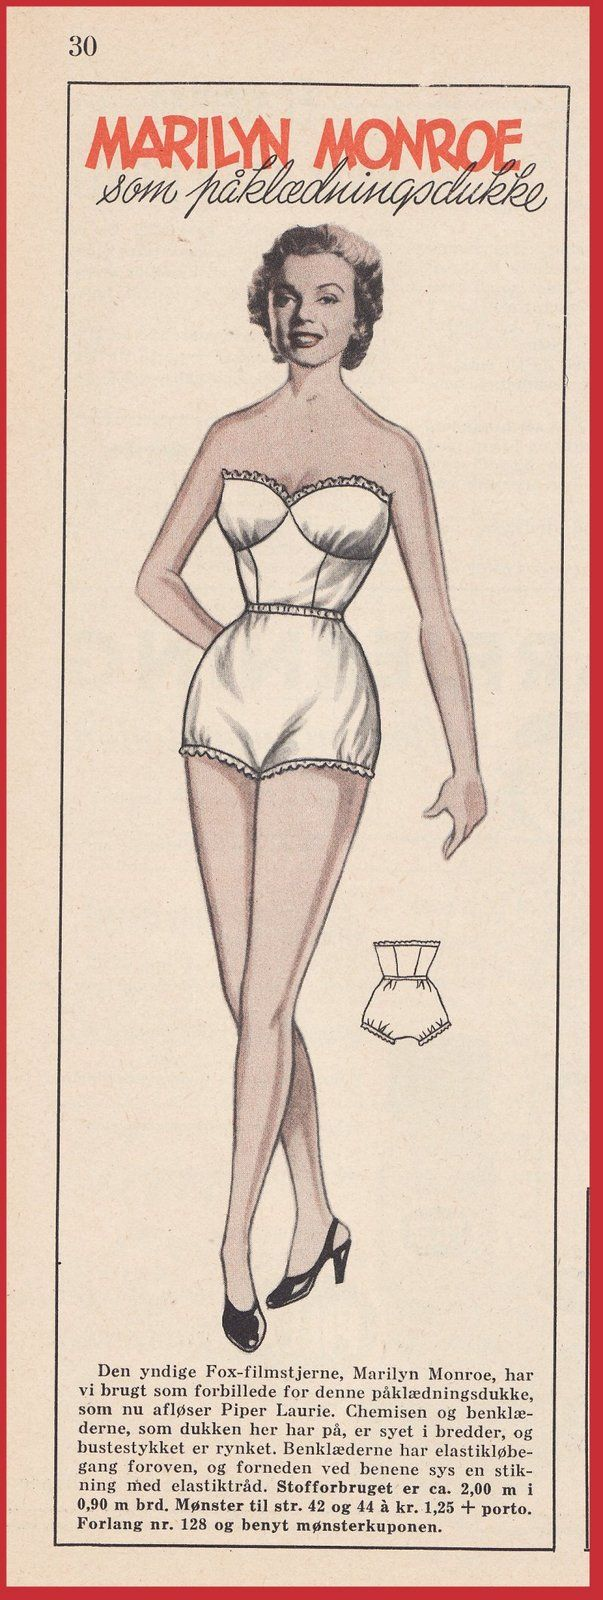 Marilyn Monroe paper doll. Paper dolls for Pinterest friends, 1500 free paper dolls at Arielle Gabriel's International Paper Doll Society.